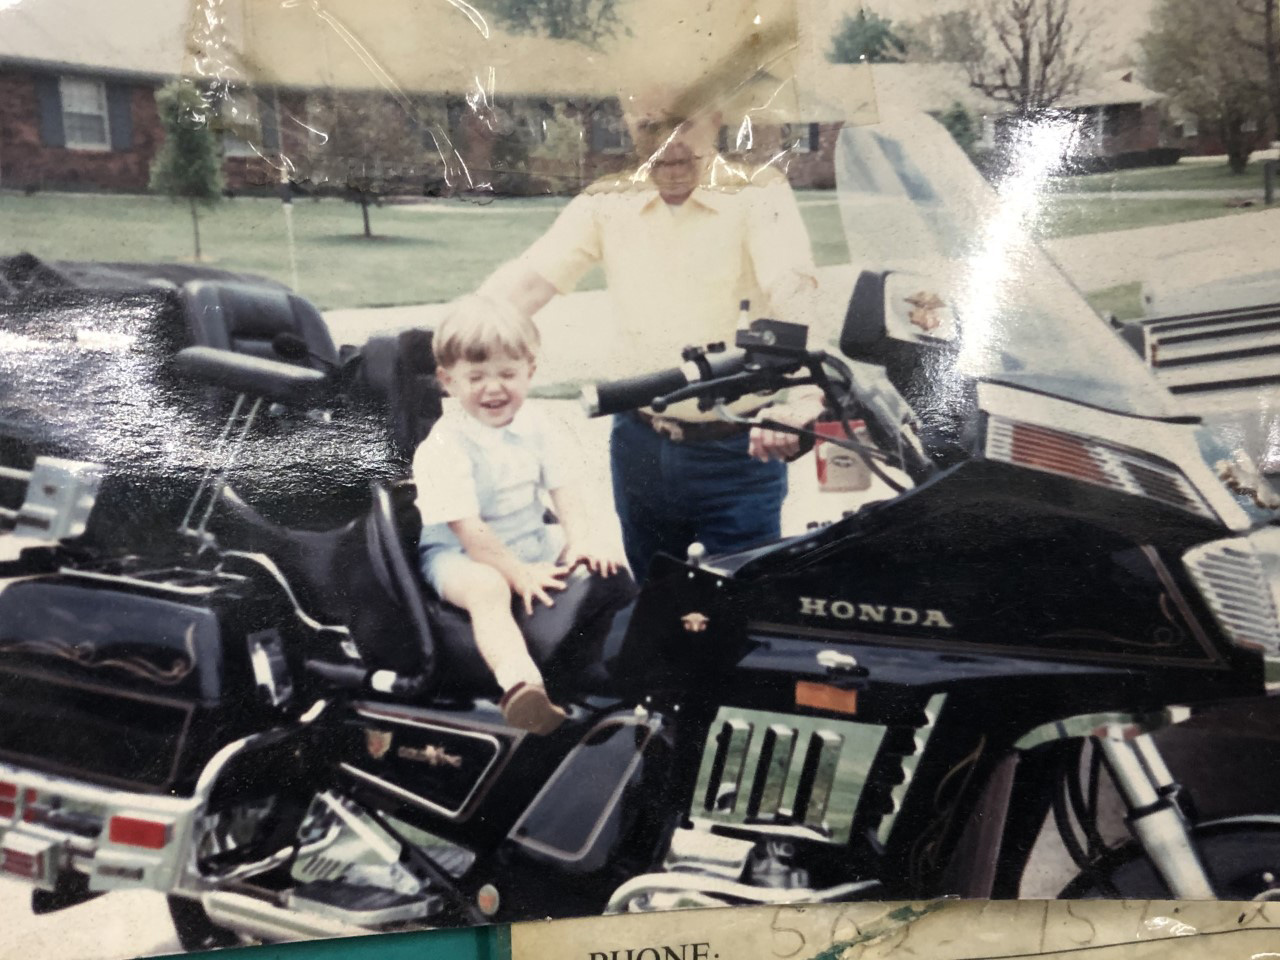 Our son, John, on John Williams' motorcycle in KY before we went to Brazil (May 1990).